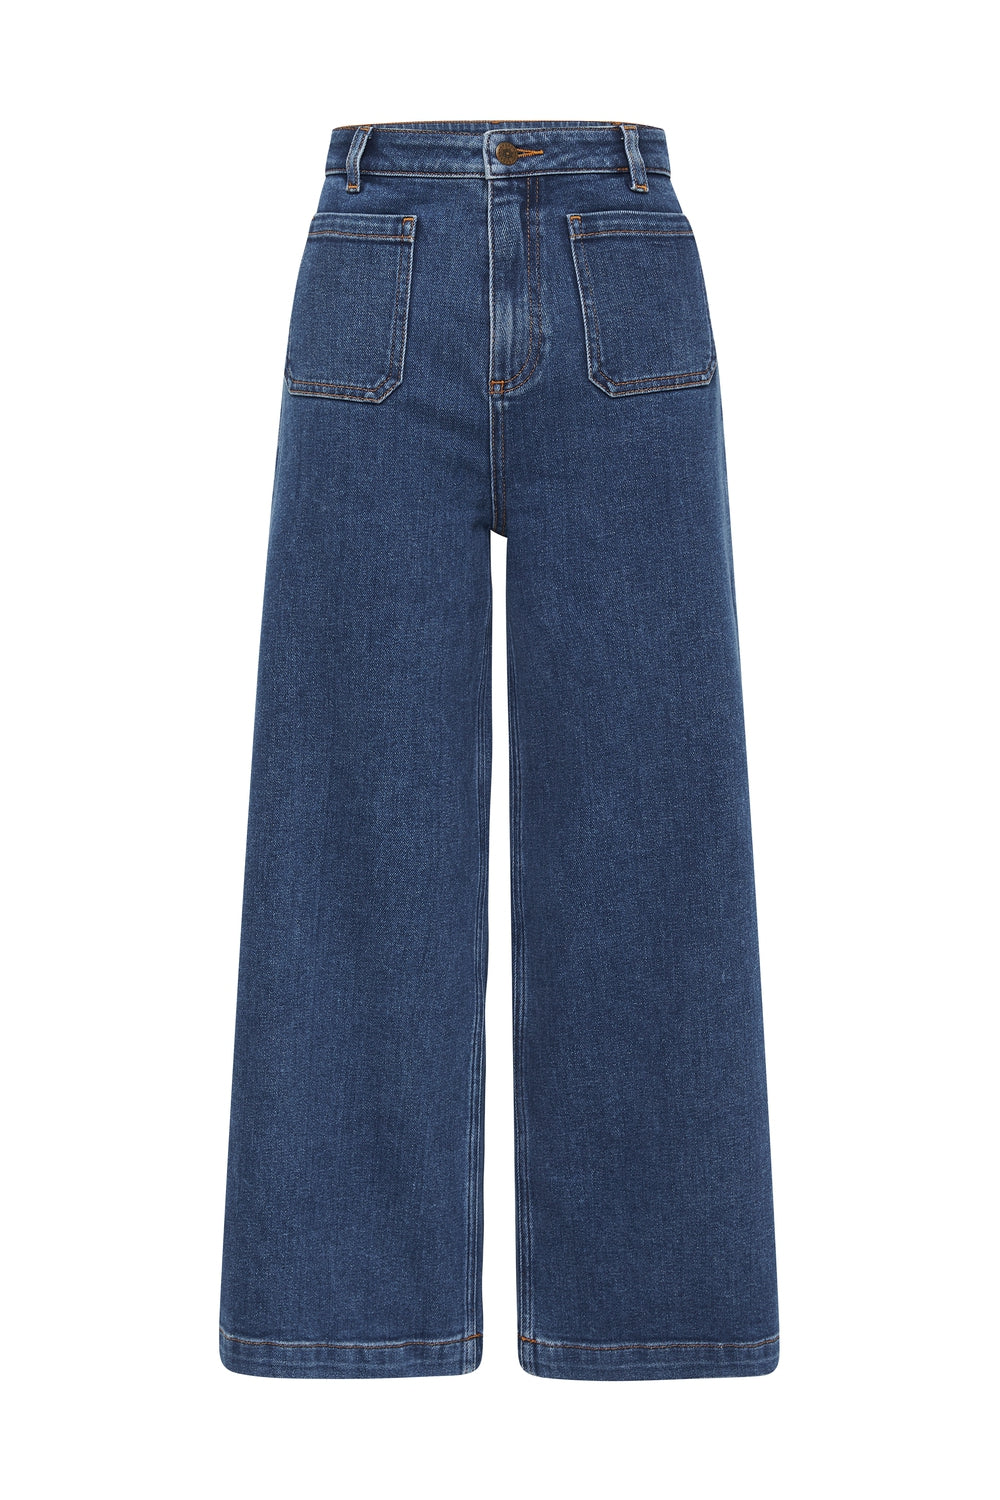 Hideaway Sailor Jeans in Vintage Blue